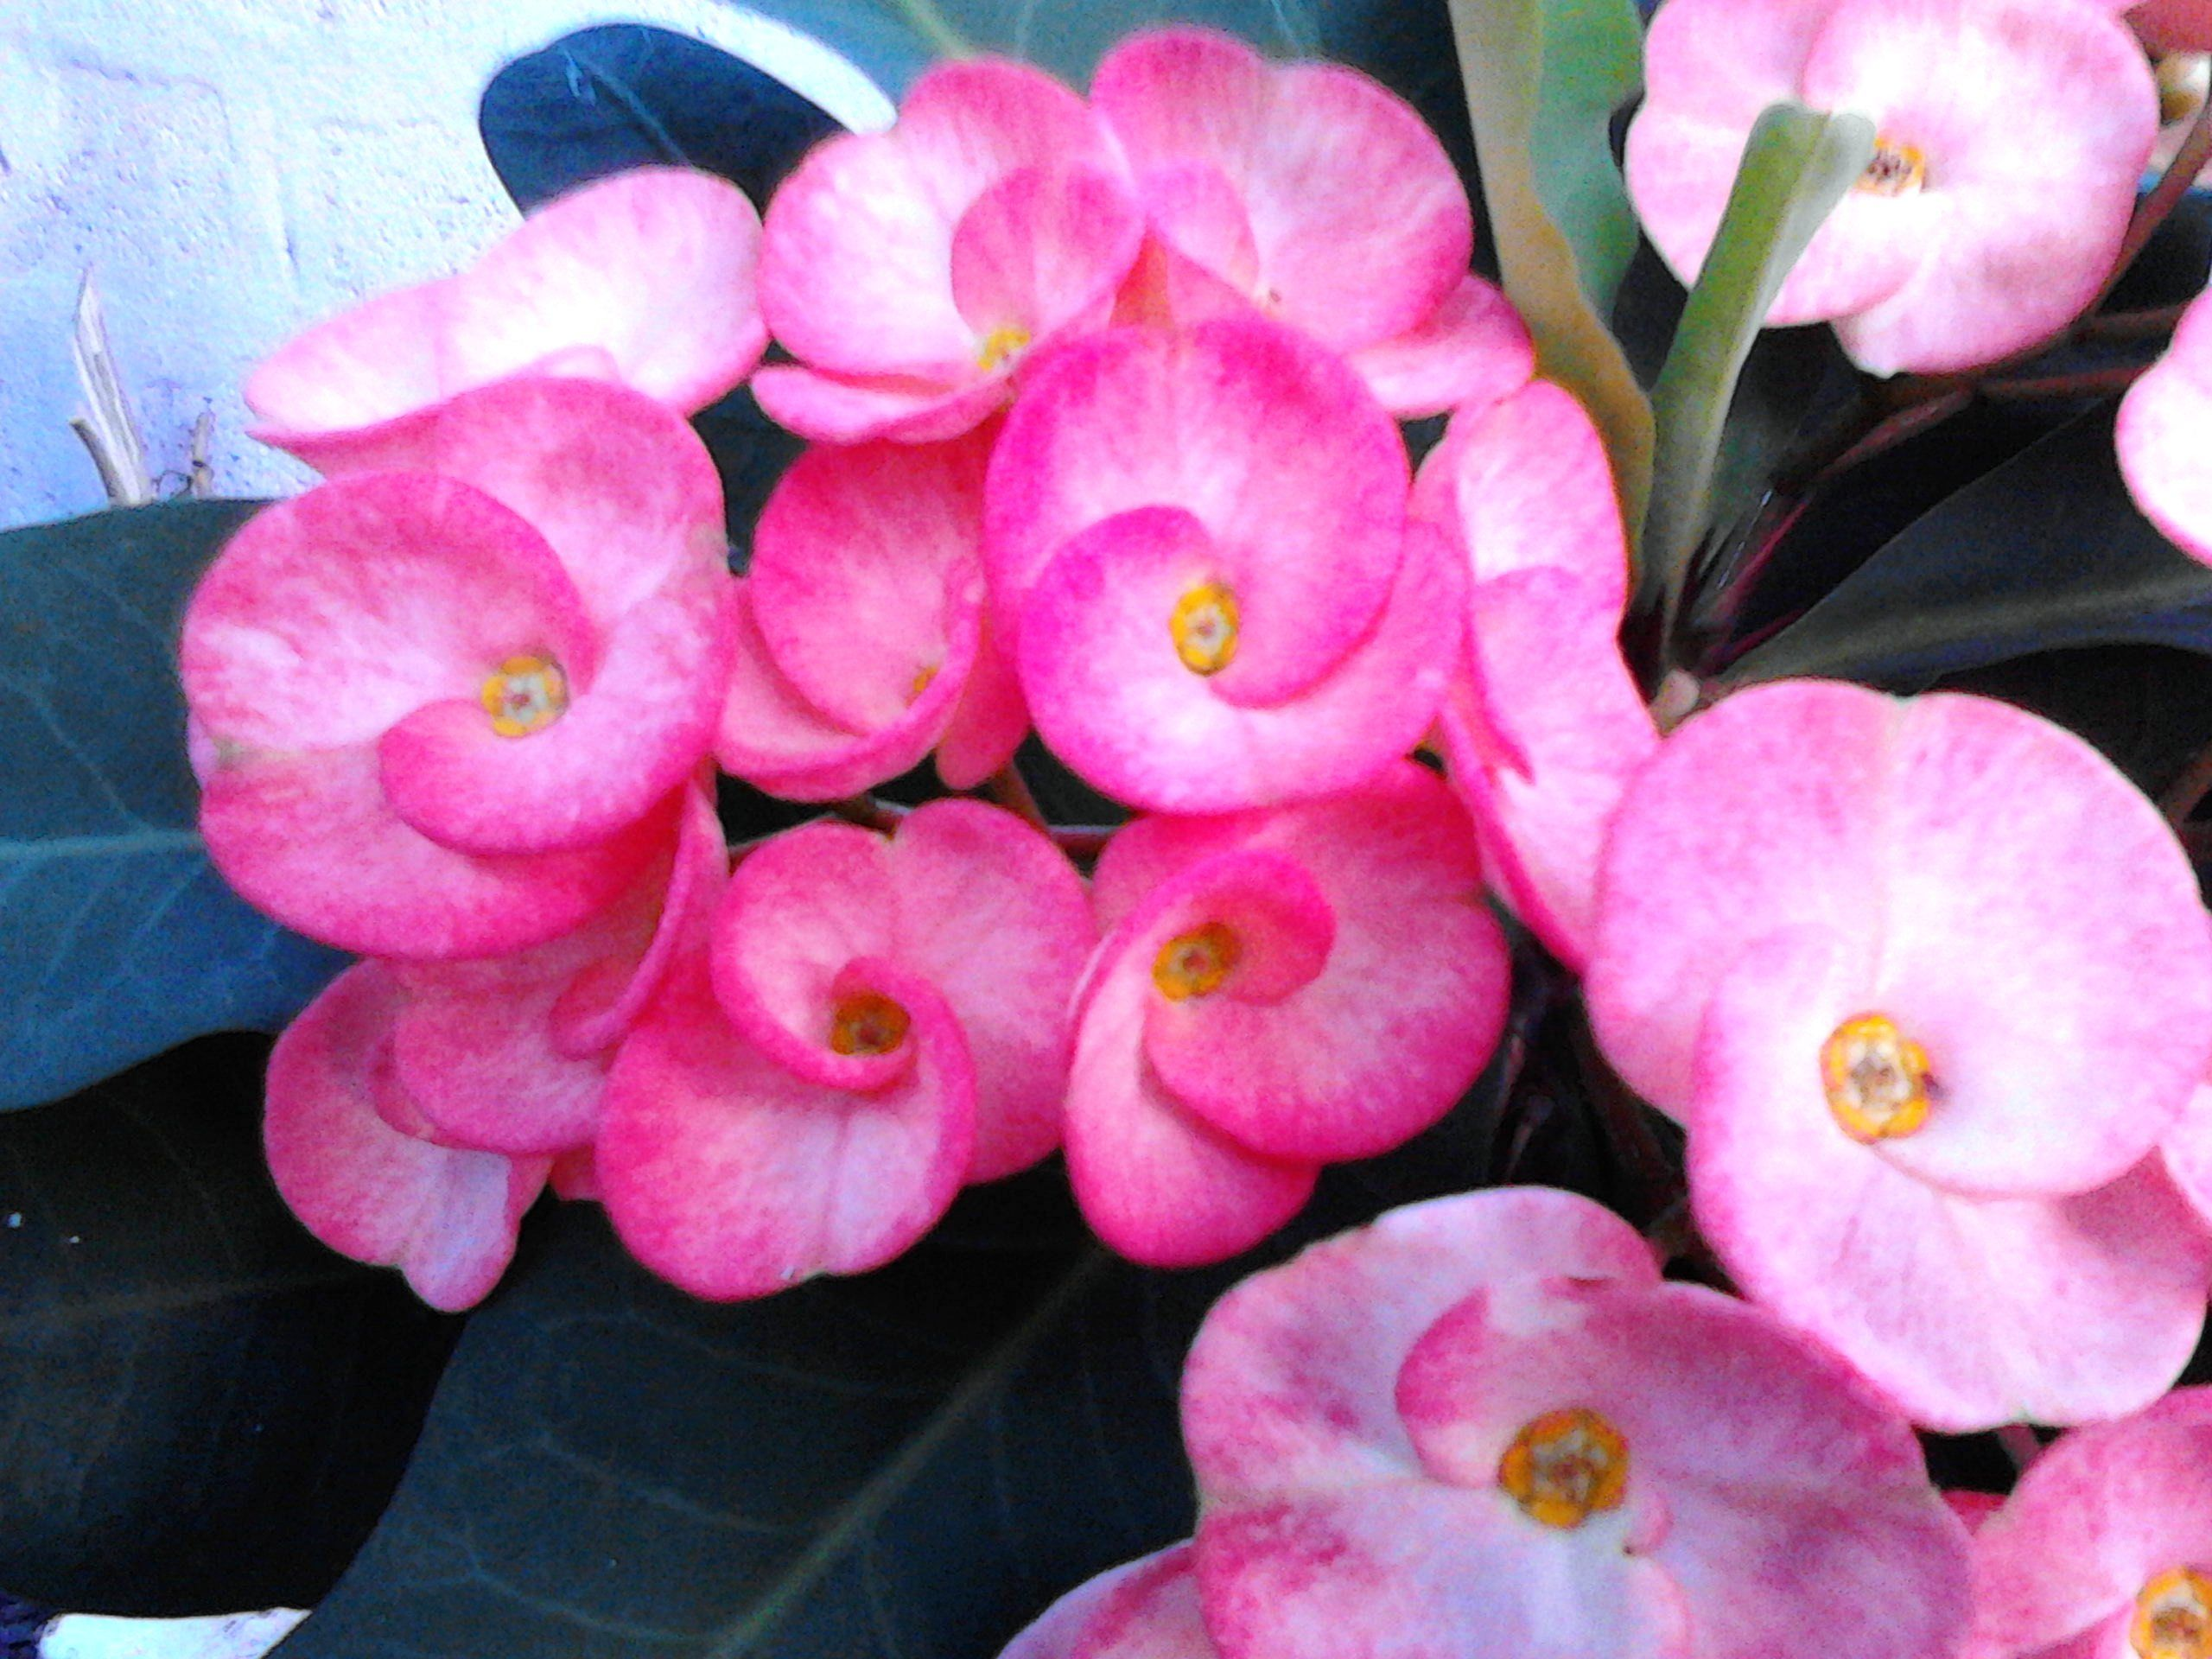 This Is A Plant Growing In My Yard Euphorbia Milii Crown Of Thorns Euphorbia Milii Flowers Hardy Plants